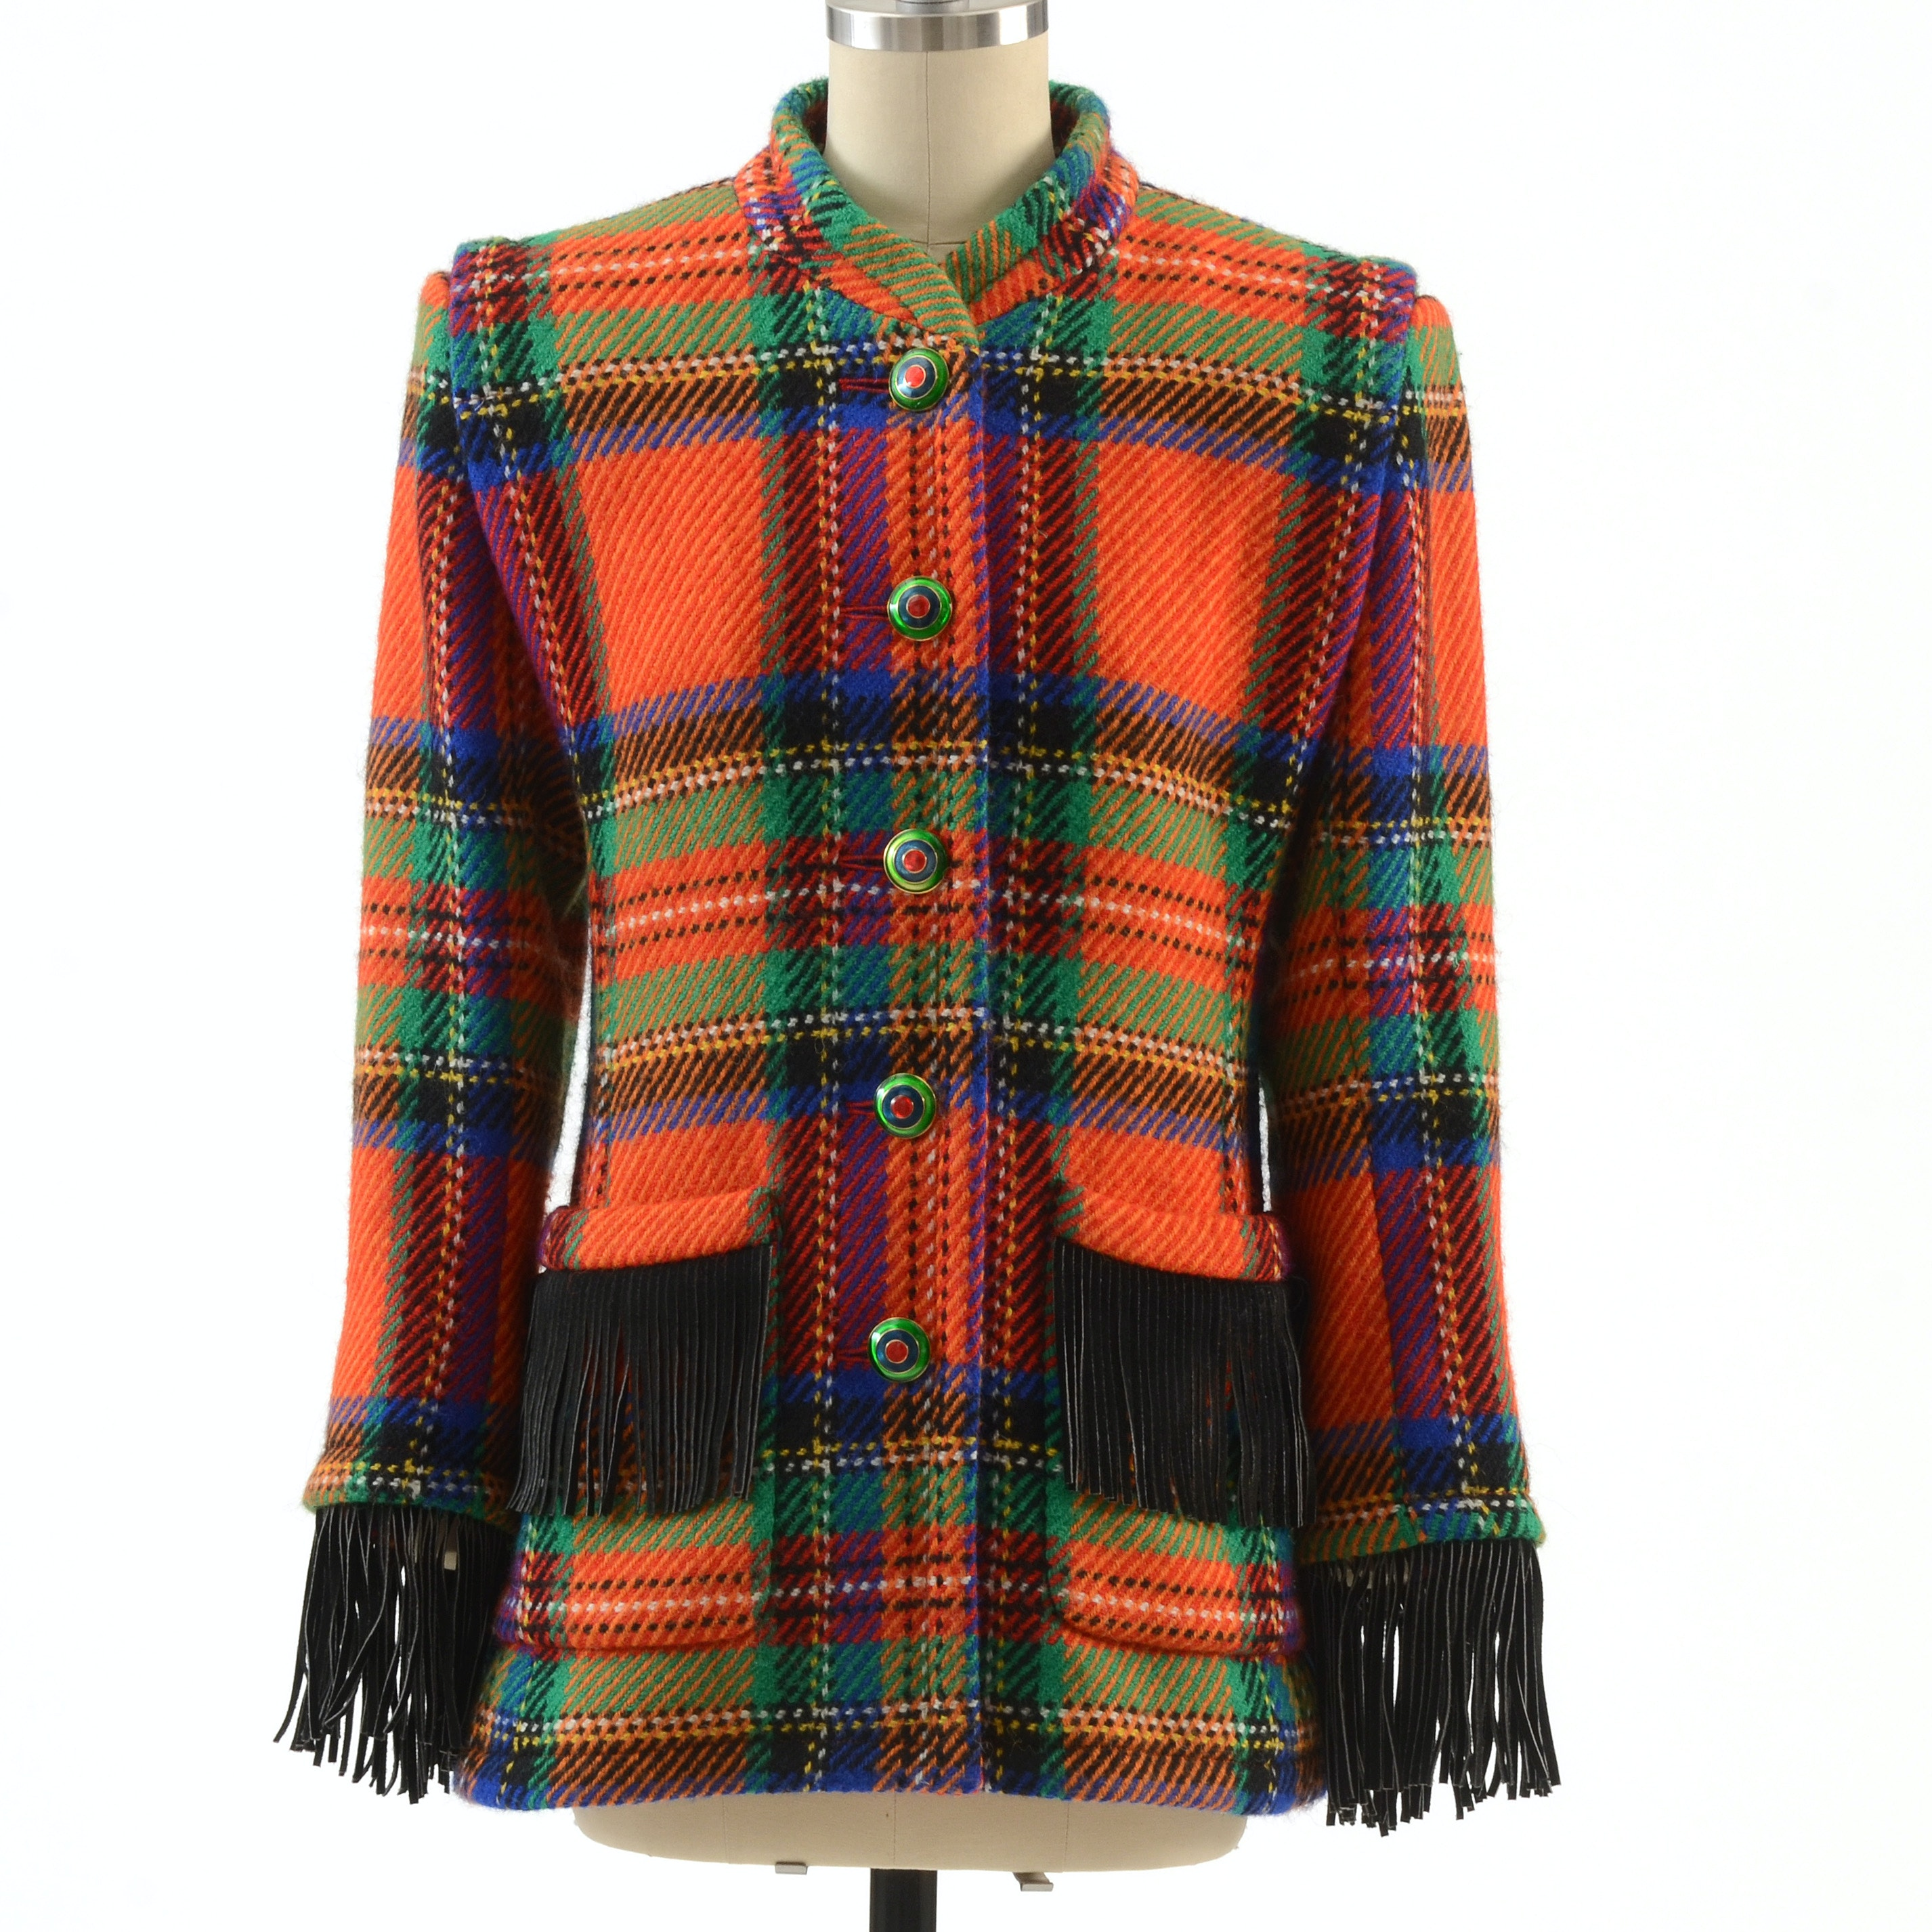 Yves Saint Laurent Rive Gauche Multi-Color Wool Jacket with Black Suede Fringe